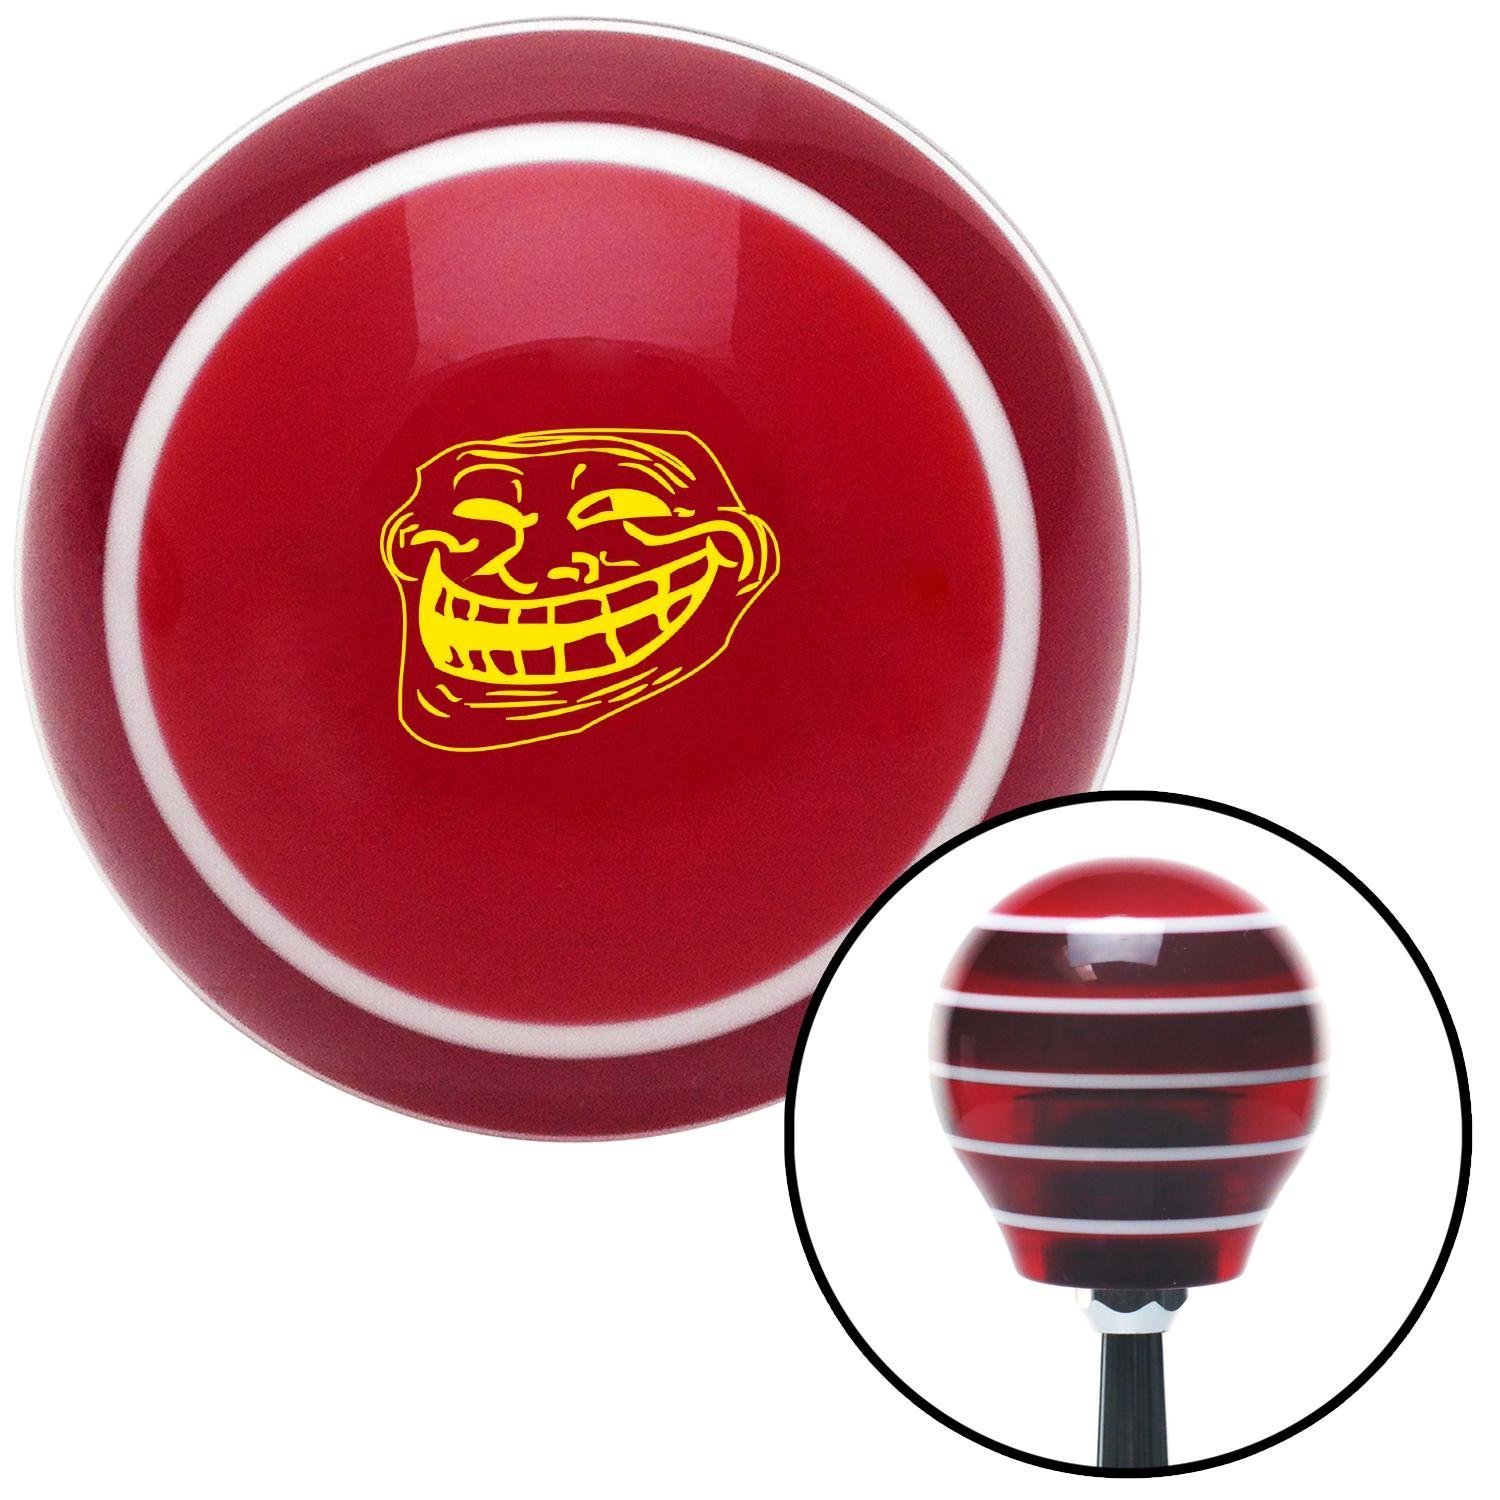 American Shifter 273811 Shift Knob Yellow Original Troll Red Stripe with M16 x 1.5 Insert